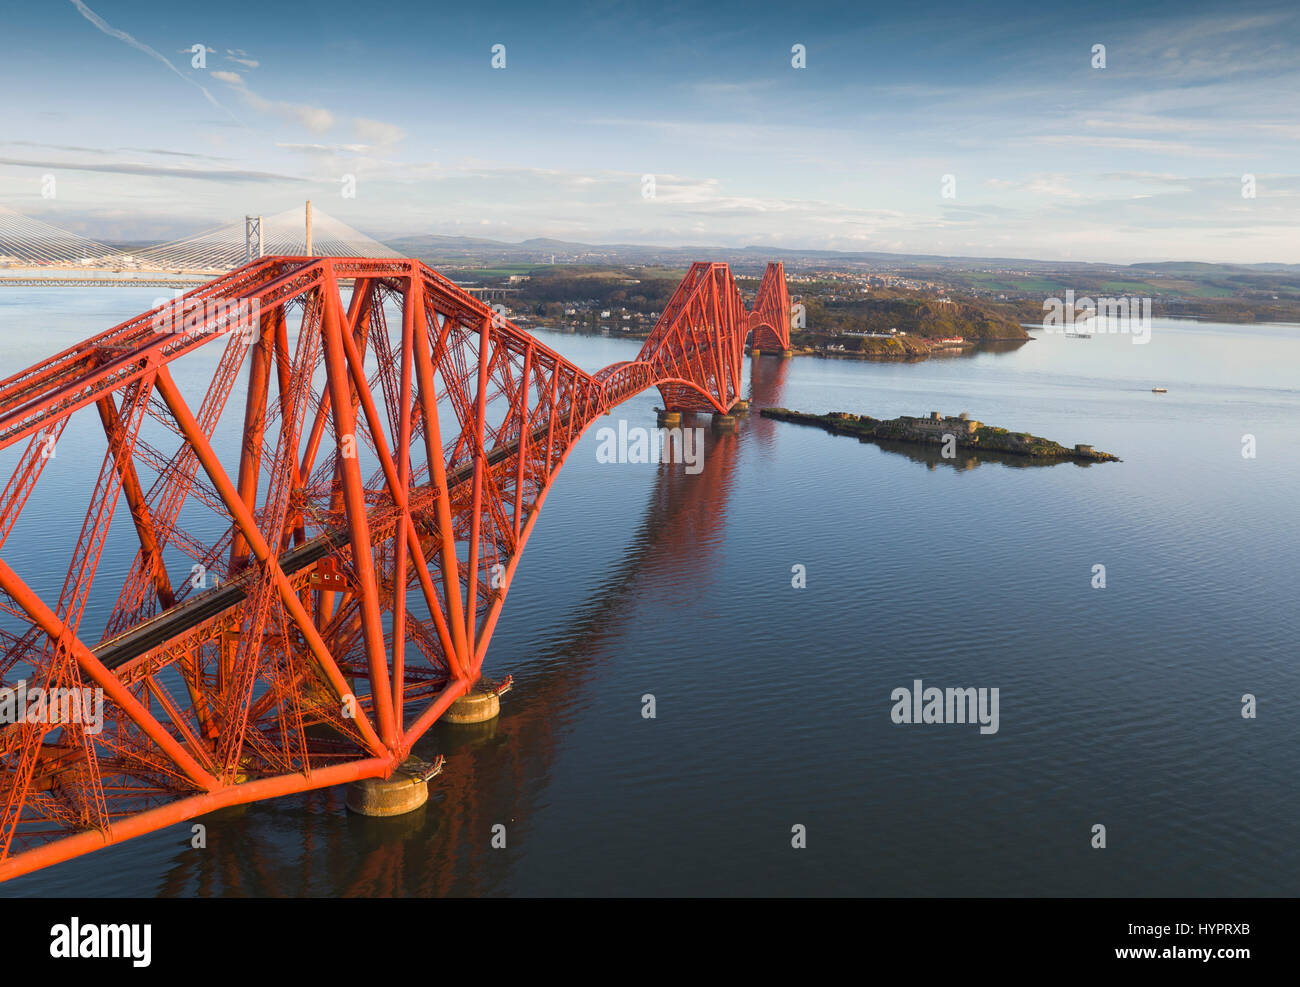 The Forth rail bridge over the Firth of Forth as seen from South Queensferry, Lothian, Scotland. - Stock Image